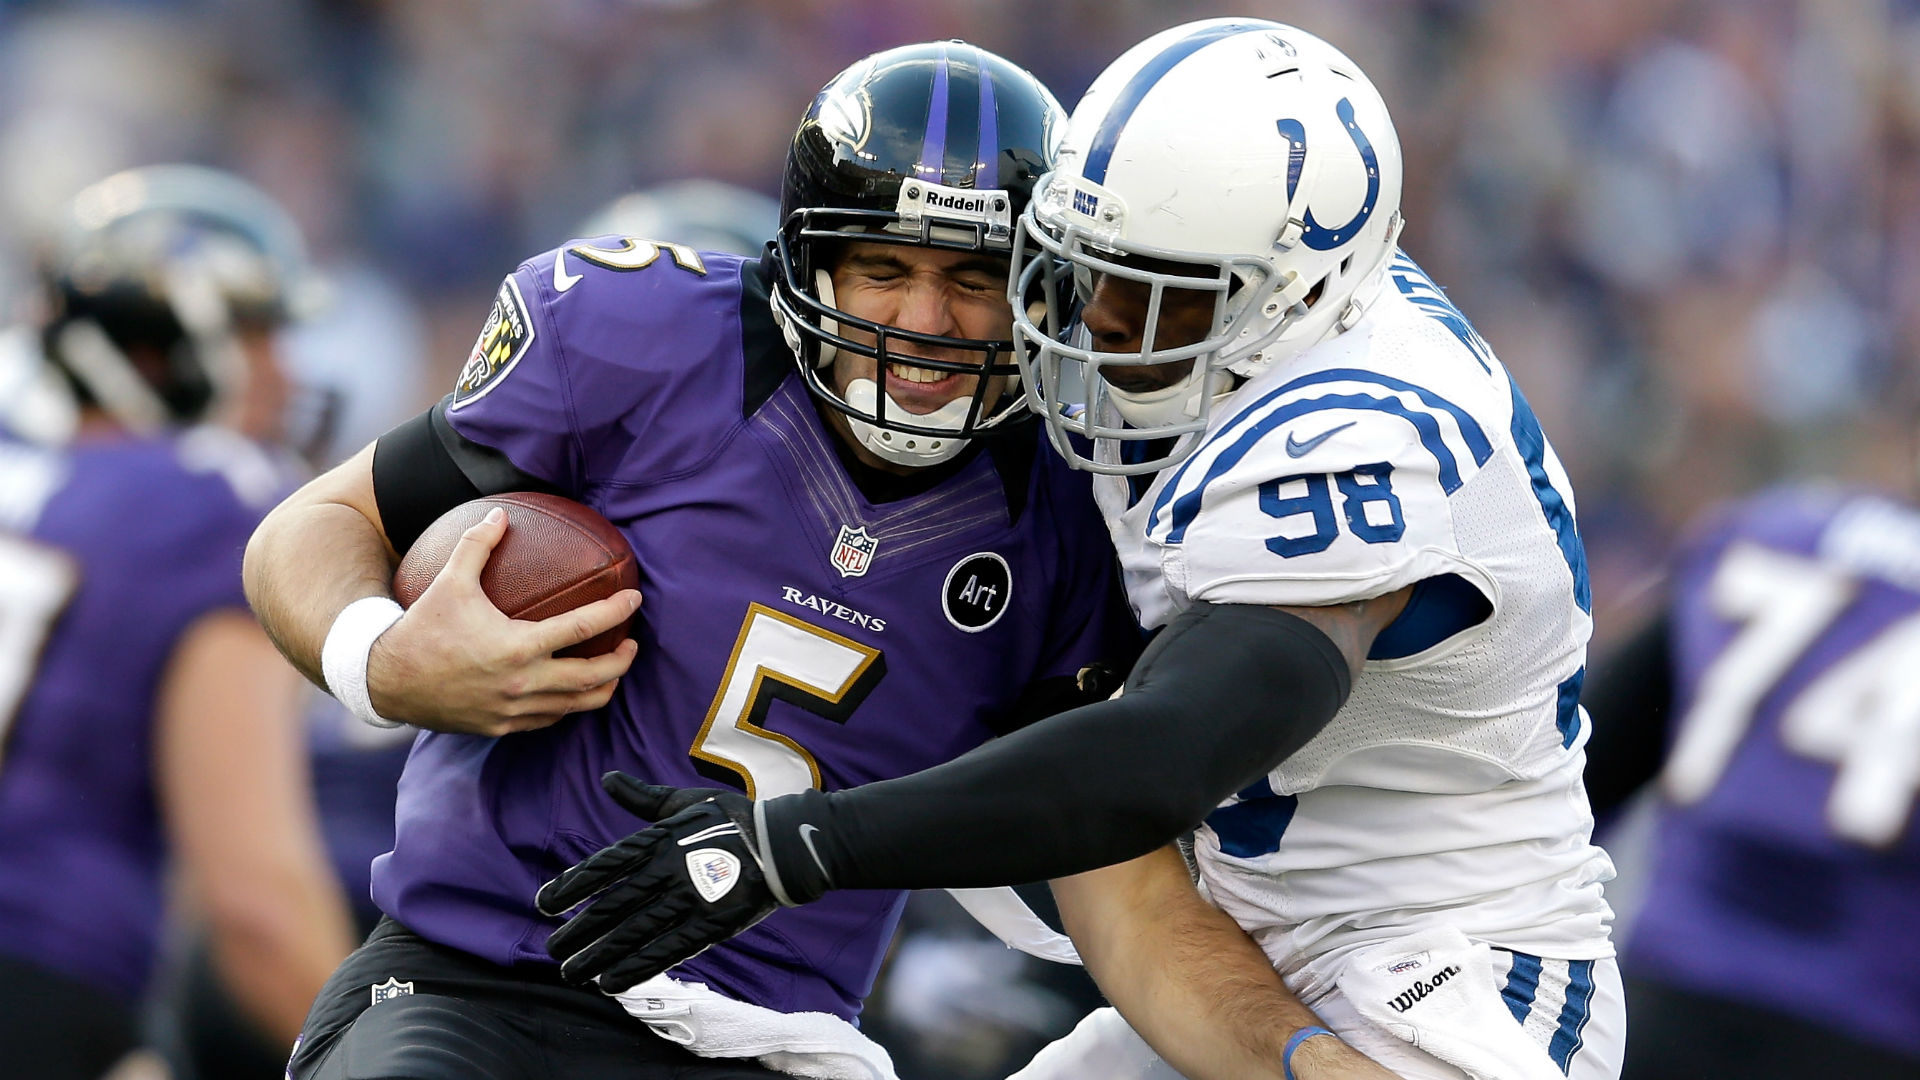 Robert Mathis sacks Joe Flacco